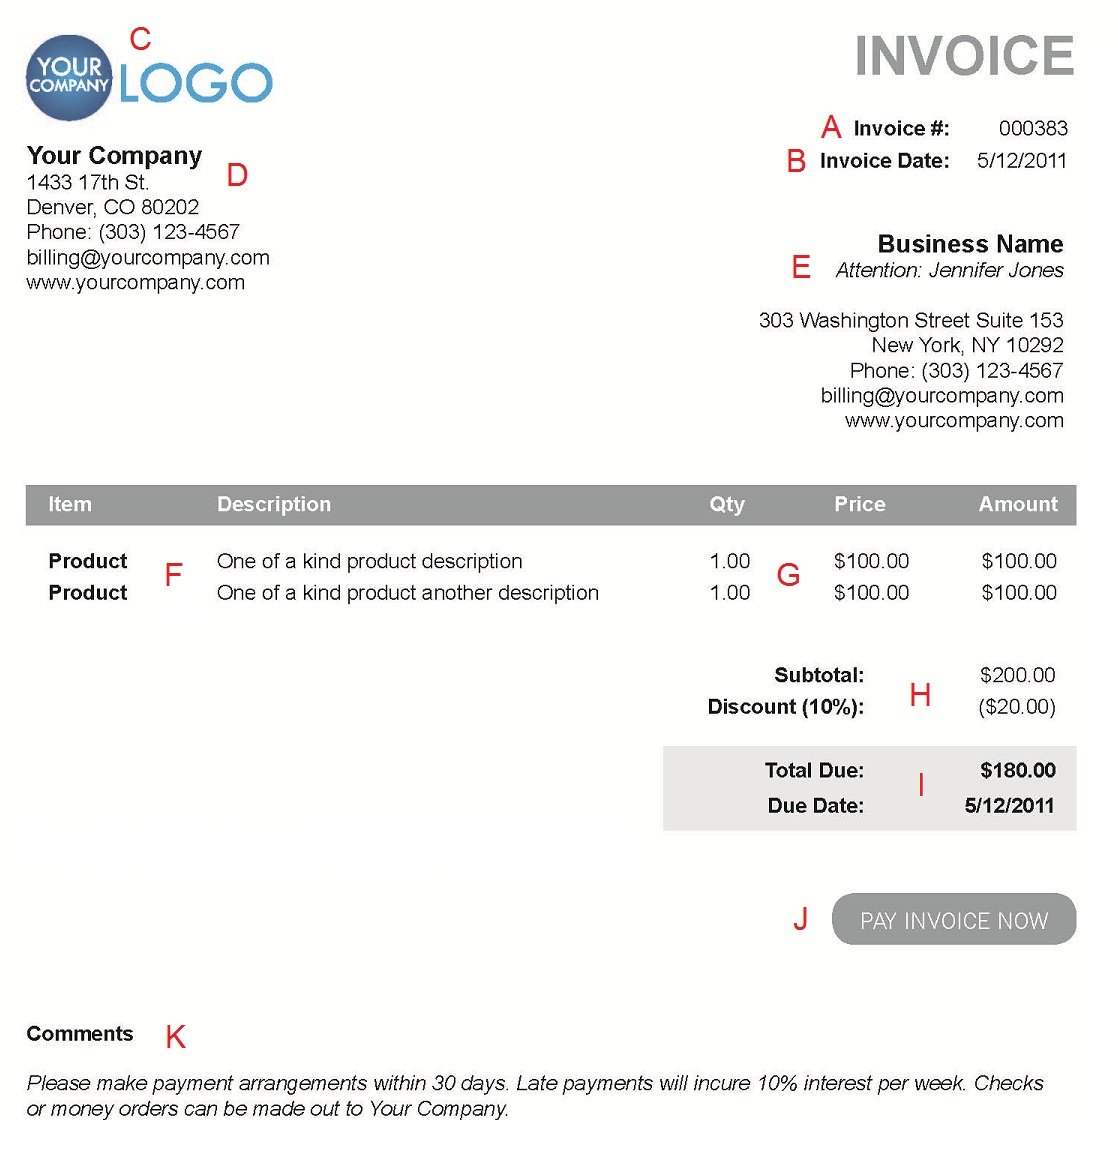 Reliefworkersus  Pleasing The  Different Sections Of An Electronic Payment Invoice With Remarkable A  With Astounding Vendor Invoice Portal Also Easy Invoice Template In Addition Approve Invoice And Quickbooks Invoice Templates Free Download As Well As What Is The Net Amount On An Invoice Additionally Please Find Attached Your Invoice From Paysimplecom With Reliefworkersus  Remarkable The  Different Sections Of An Electronic Payment Invoice With Astounding A  And Pleasing Vendor Invoice Portal Also Easy Invoice Template In Addition Approve Invoice From Paysimplecom